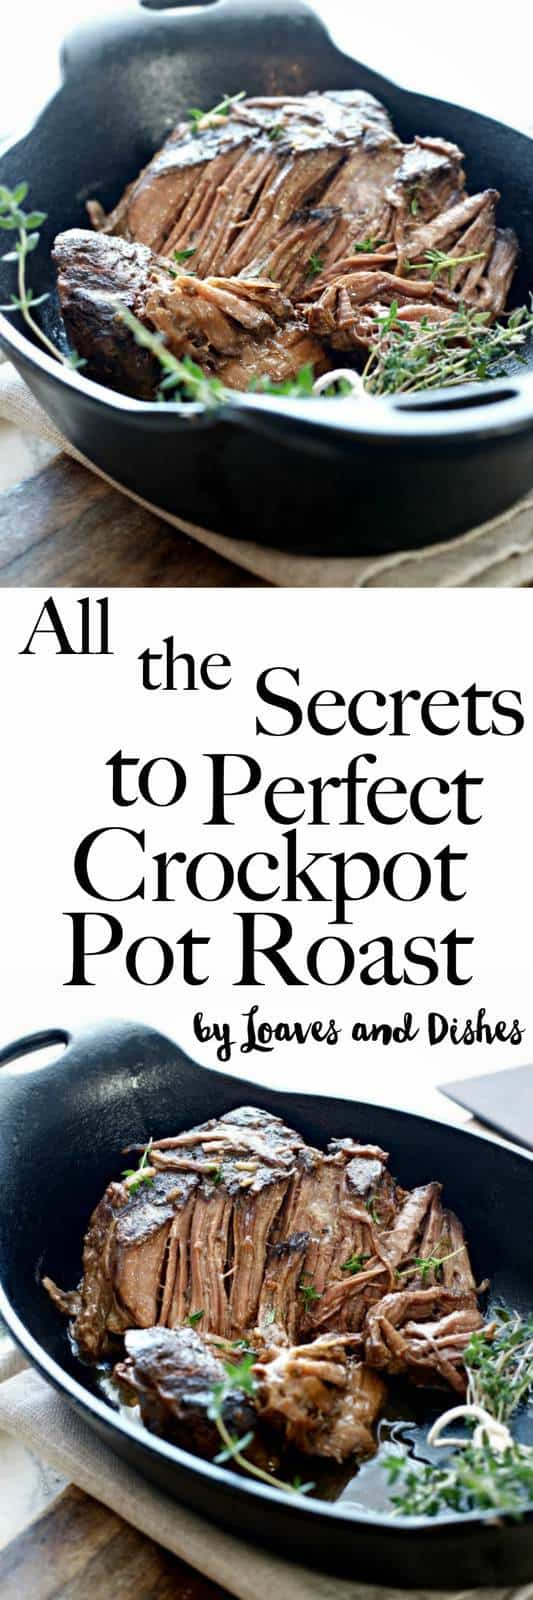 Want to know how to make a perfect tender slow cooked beef pot roast in the slow cooker using a chuck roast? All the answers are right here. This recipe is super easy and is simply the best! Like something you find on Pioneer woman but with no onion soup. Quick and delicious!